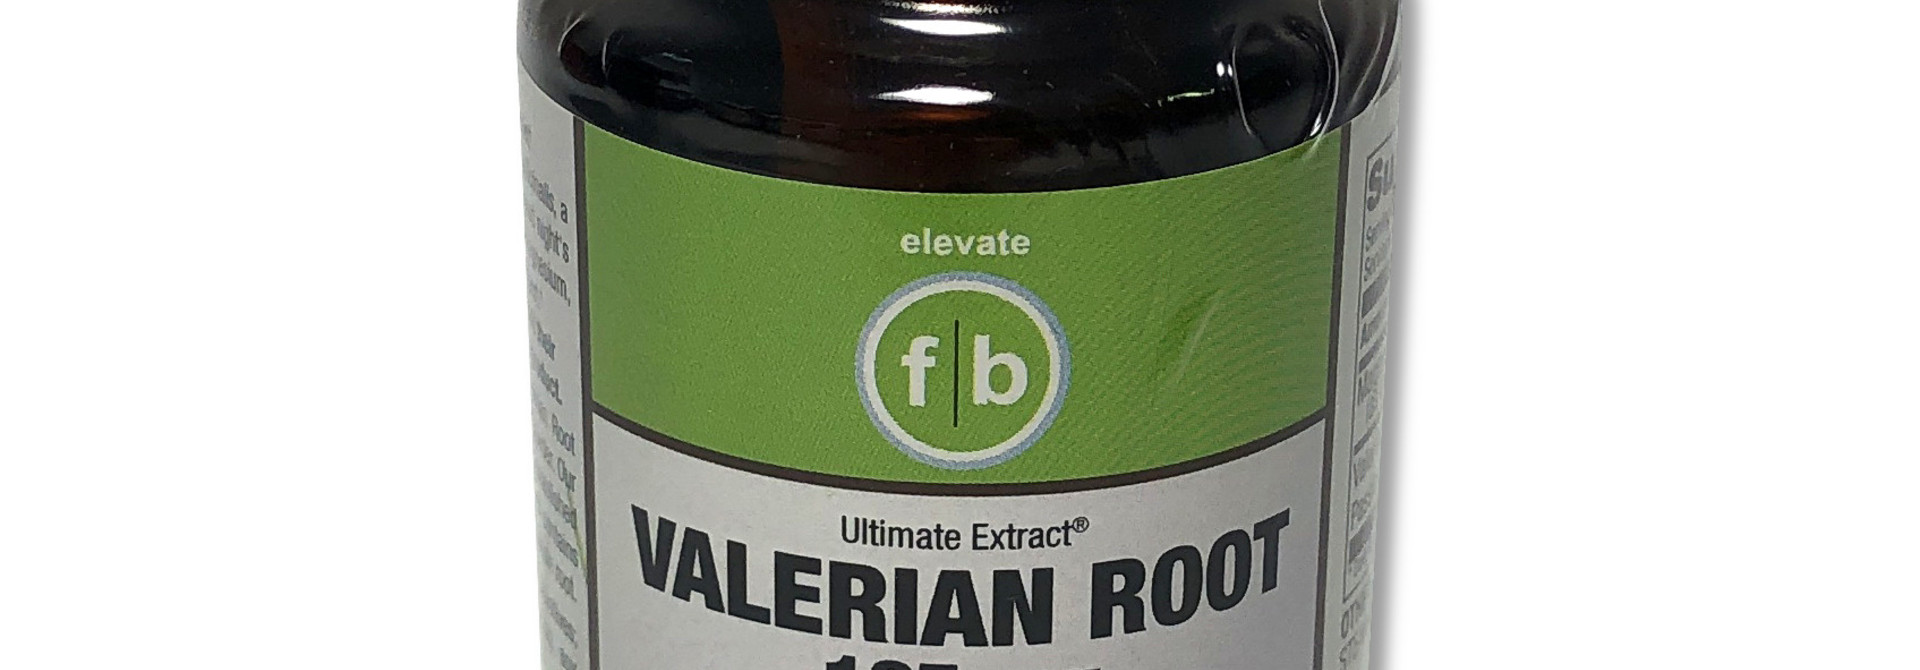 Valerian Root 125 mg